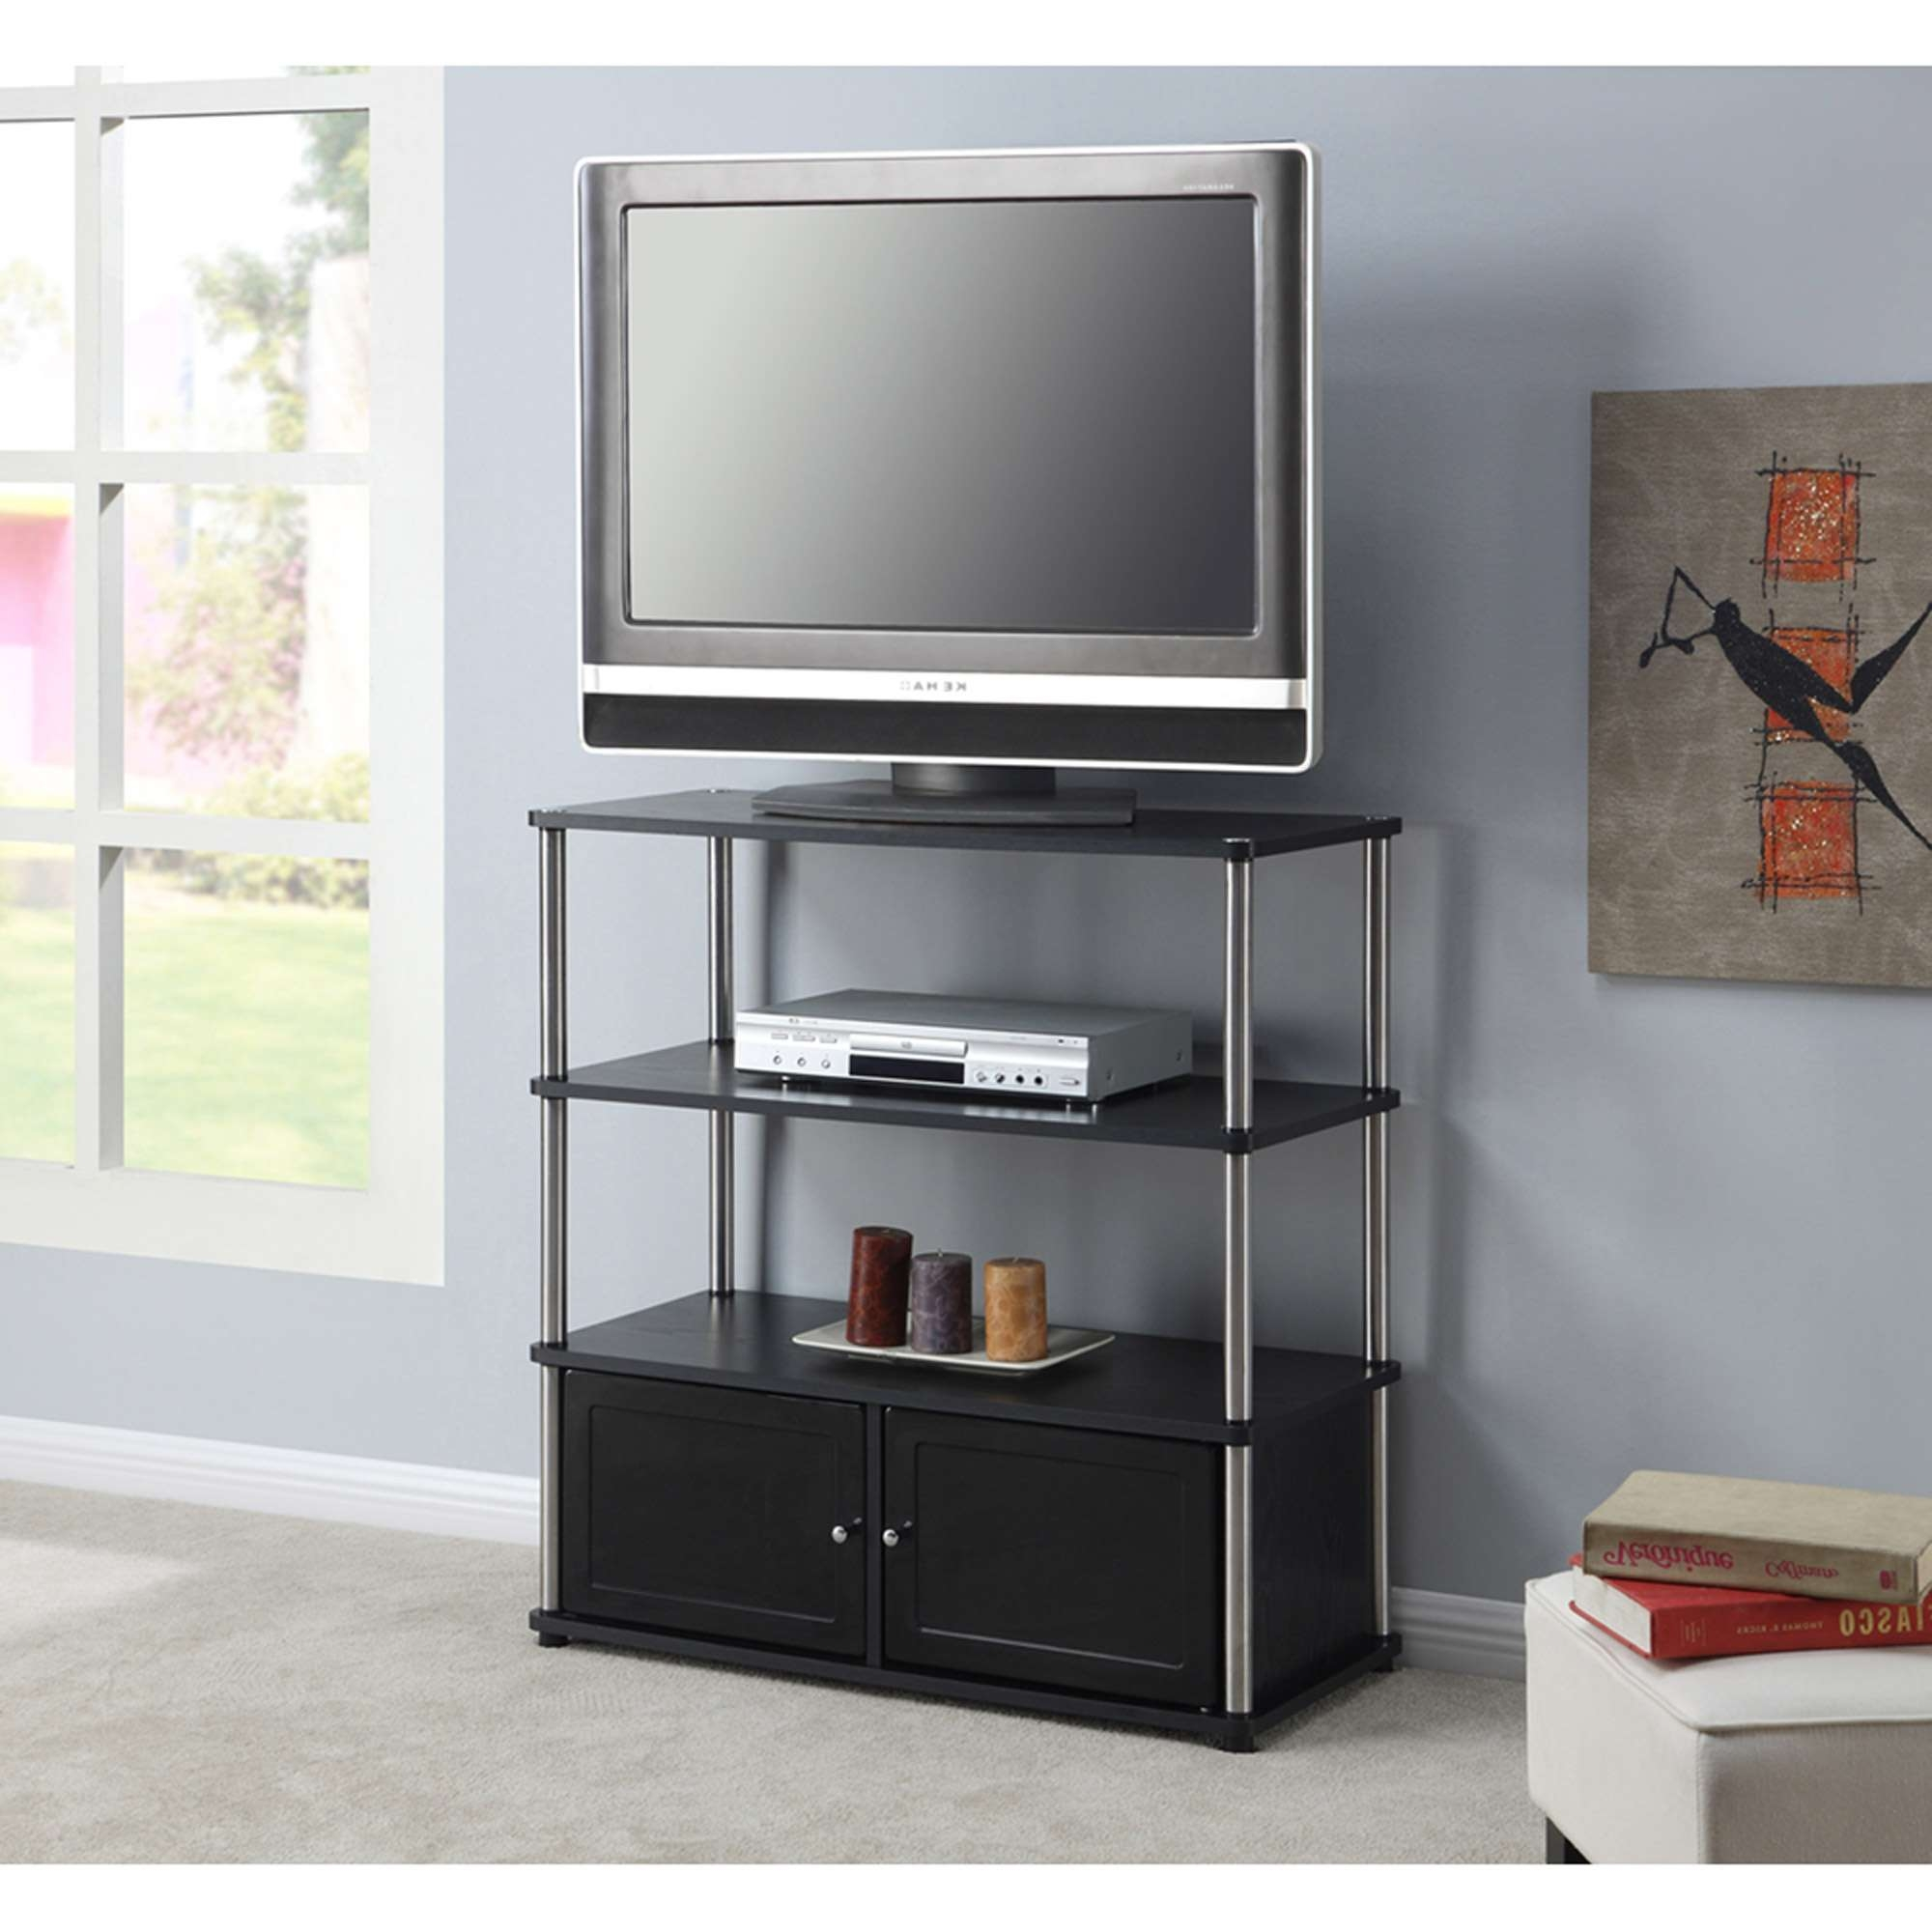 Tv Stands Inspiring Stand With Mount And Drawers Design Altra In Tv Stands Tall Narrow (View 3 of 15)